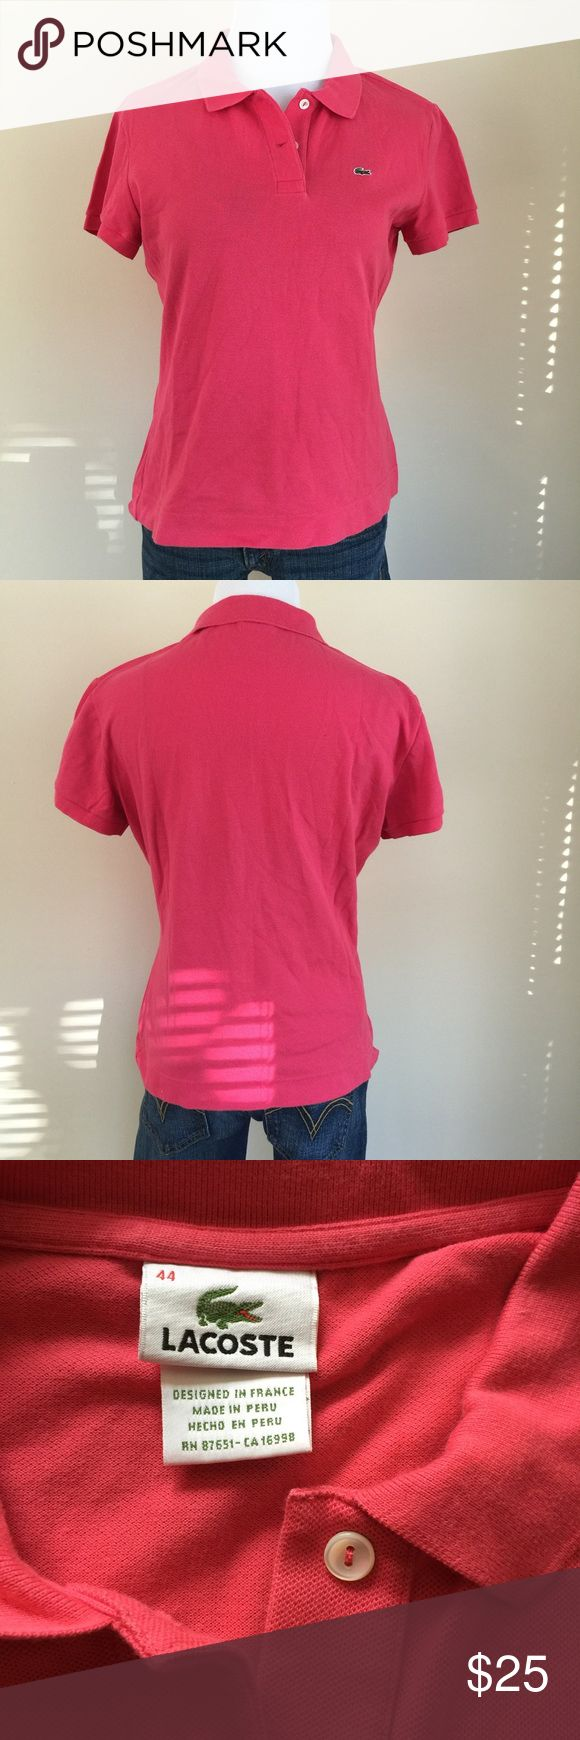 """Lacoste bubblegum pink polo sz 44 (XL) Lacoste bubblegum pink polo shirt, size 44.  Per Lacoste's ladies polo shirt size chart, 44 is an XL.  Condition:  very good pre-loved.  Material:  94% cotton/6% elastane.  Measurements (approximate, taken laying flat):  length 21"""", pit-to-pit 20"""", flat waist 17"""", flat hip/hem 19"""", sleeve 6"""". Lacoste Tops"""